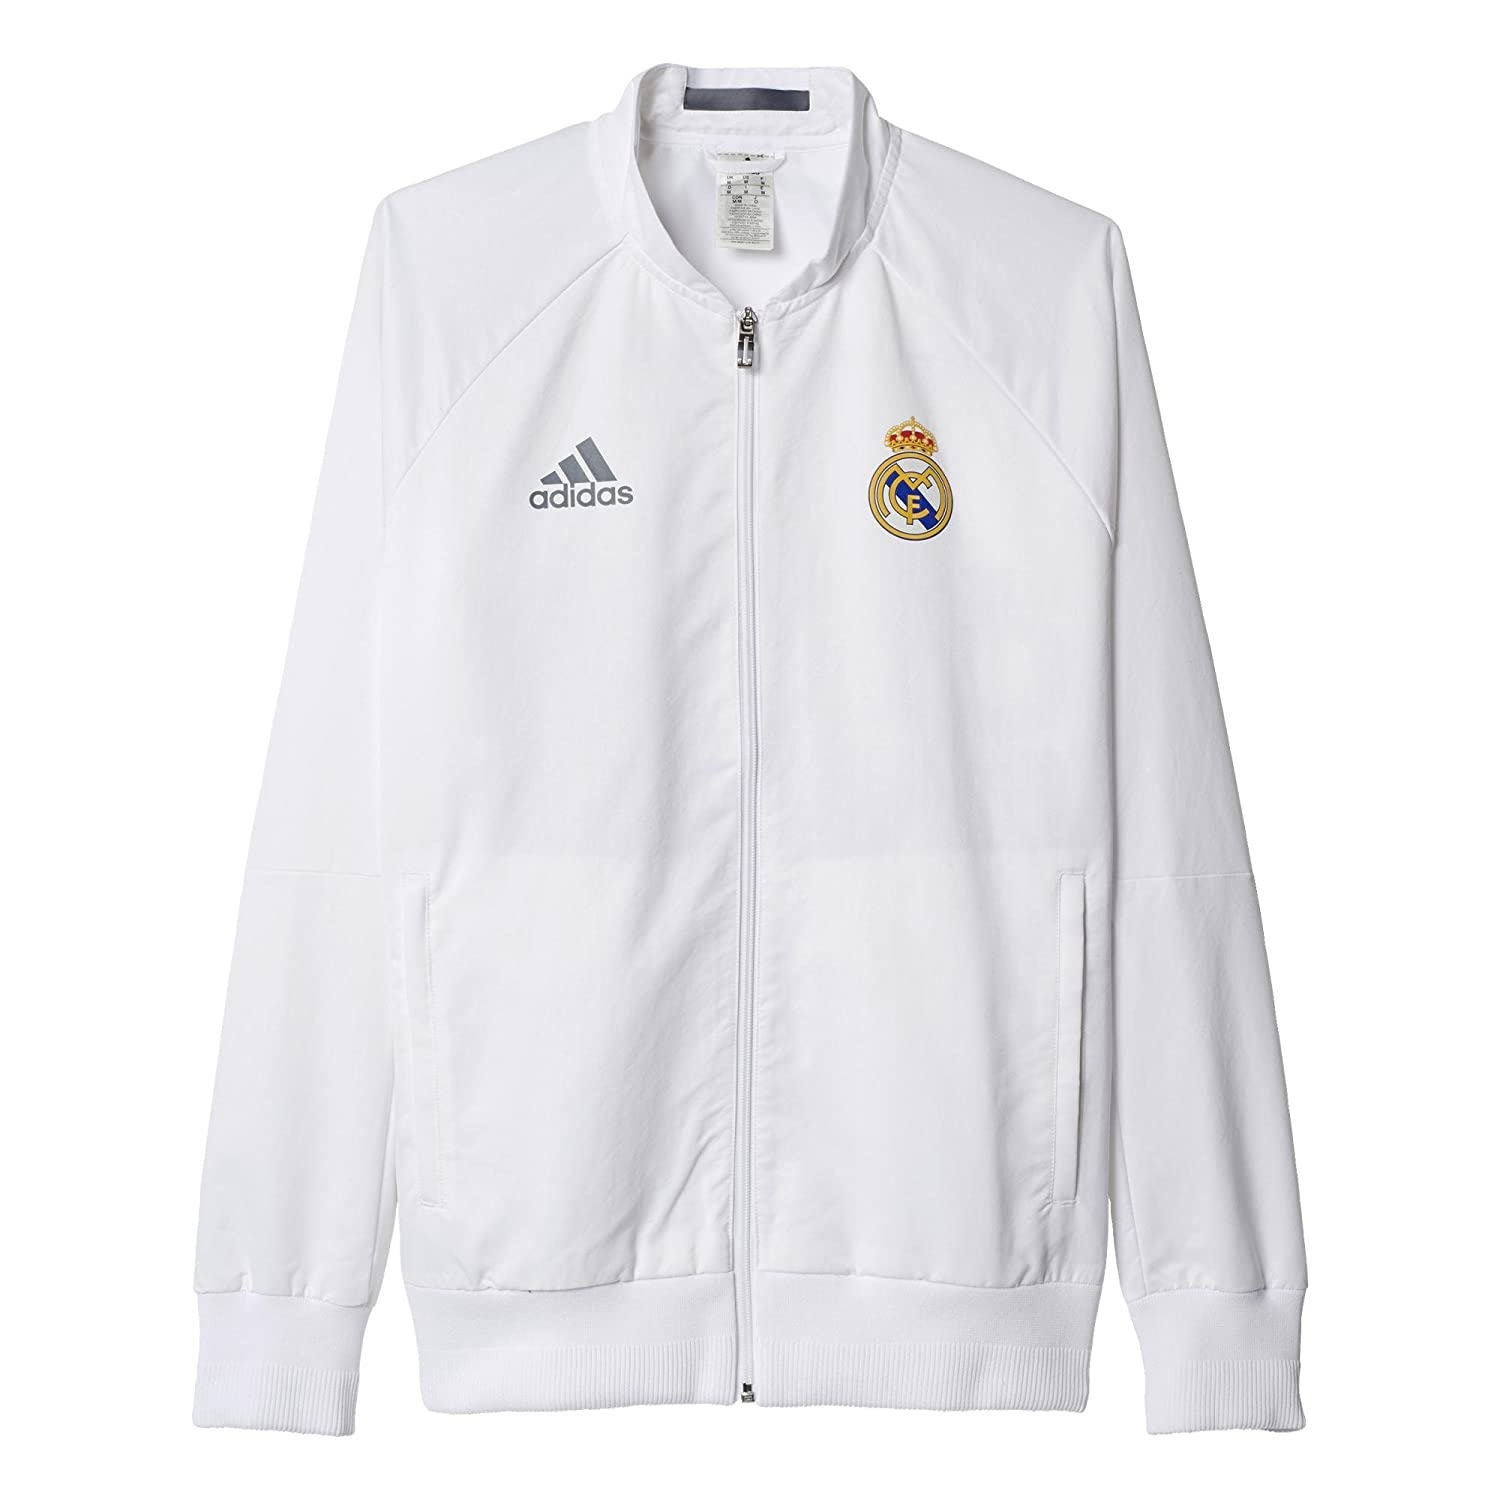 adidas Women's Real Madrid Anthem Jacket AI4661